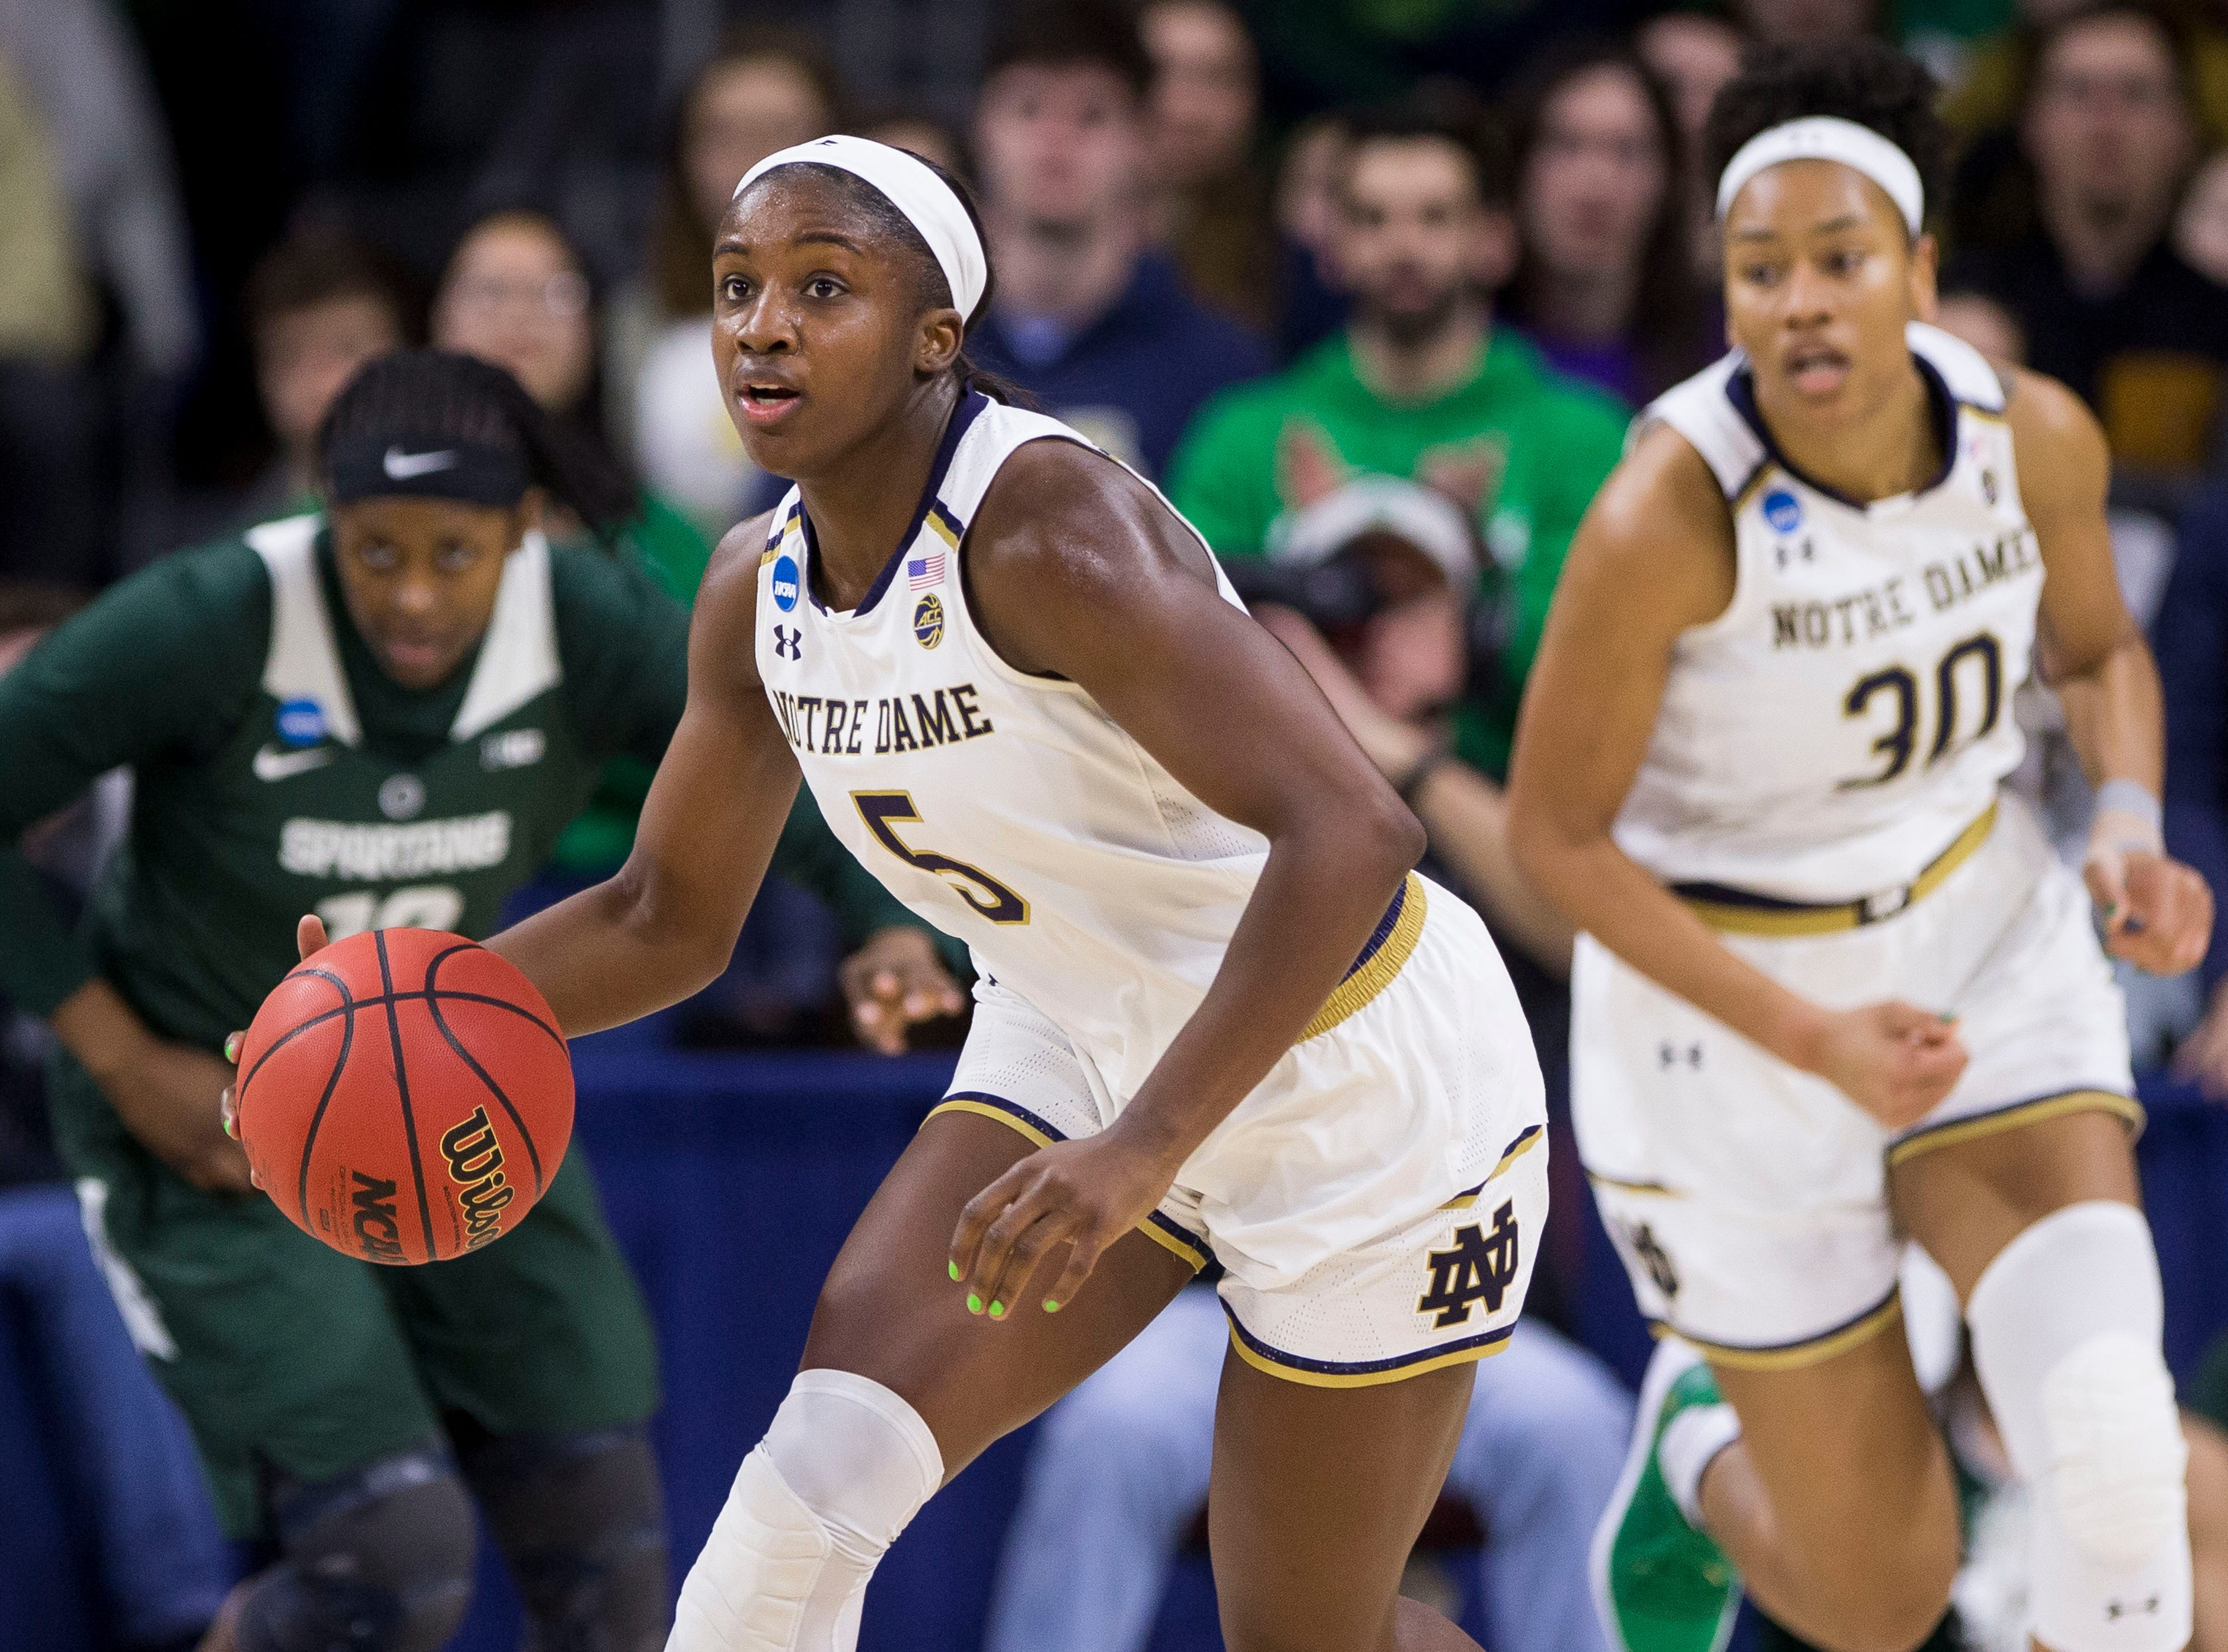 Notre Dame's Jackie Young (5) drives downcourt during a second-round game against Michigan State in the NCAA women's college basketball tournament in South Bend, Ind., Monday, March 25, 2019. (AP Photo/Robert Franklin)